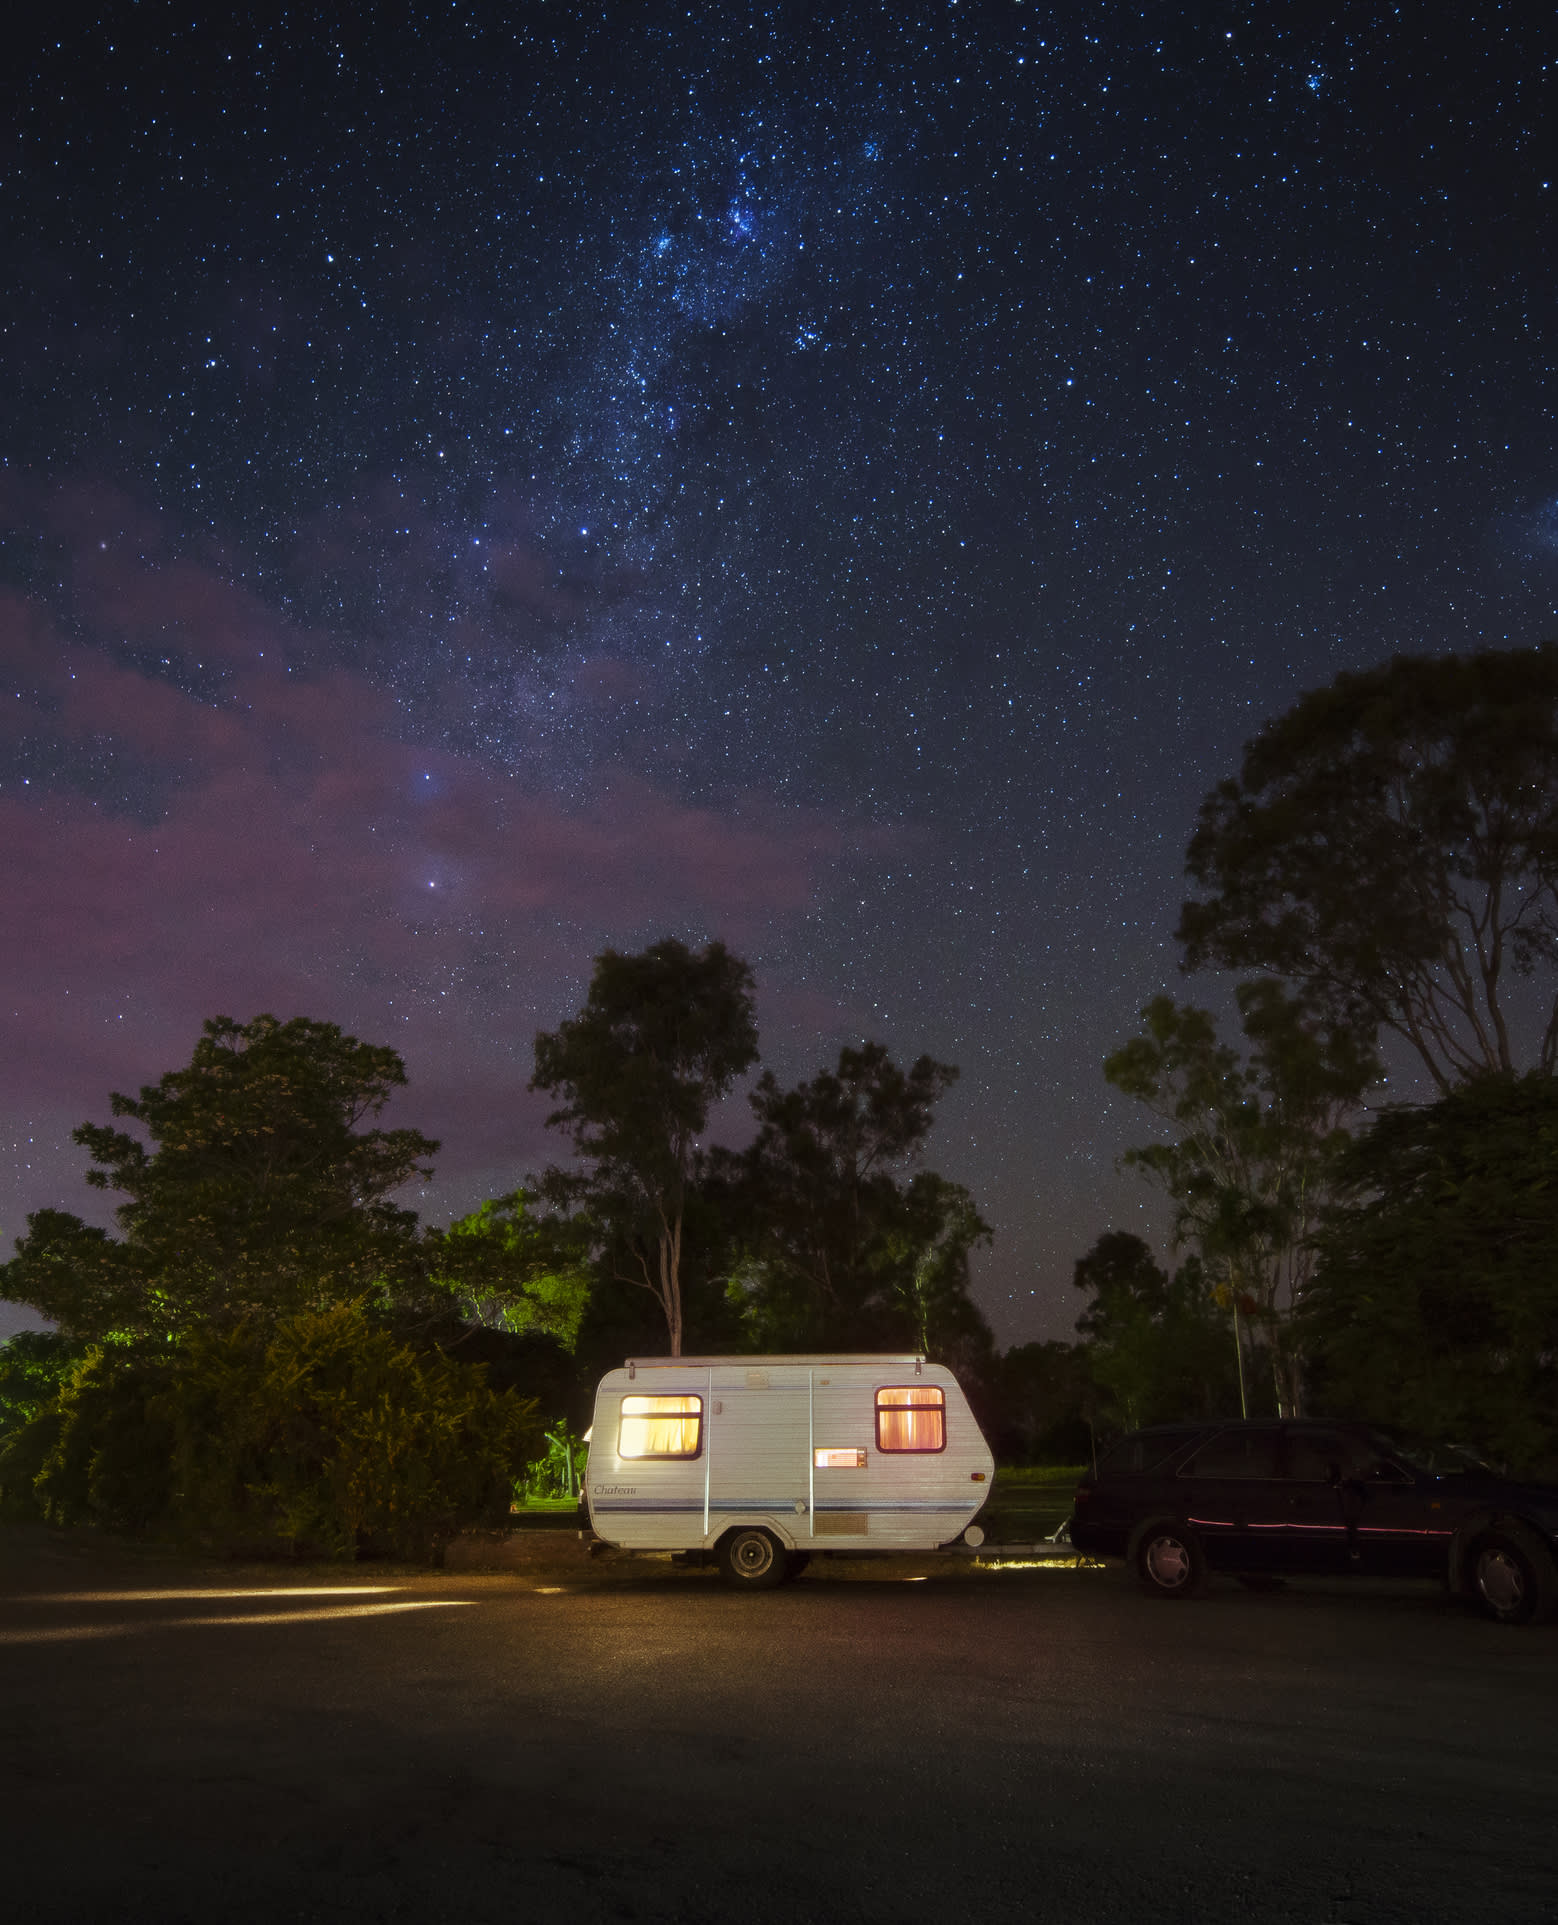 A parked caravan on a starry night